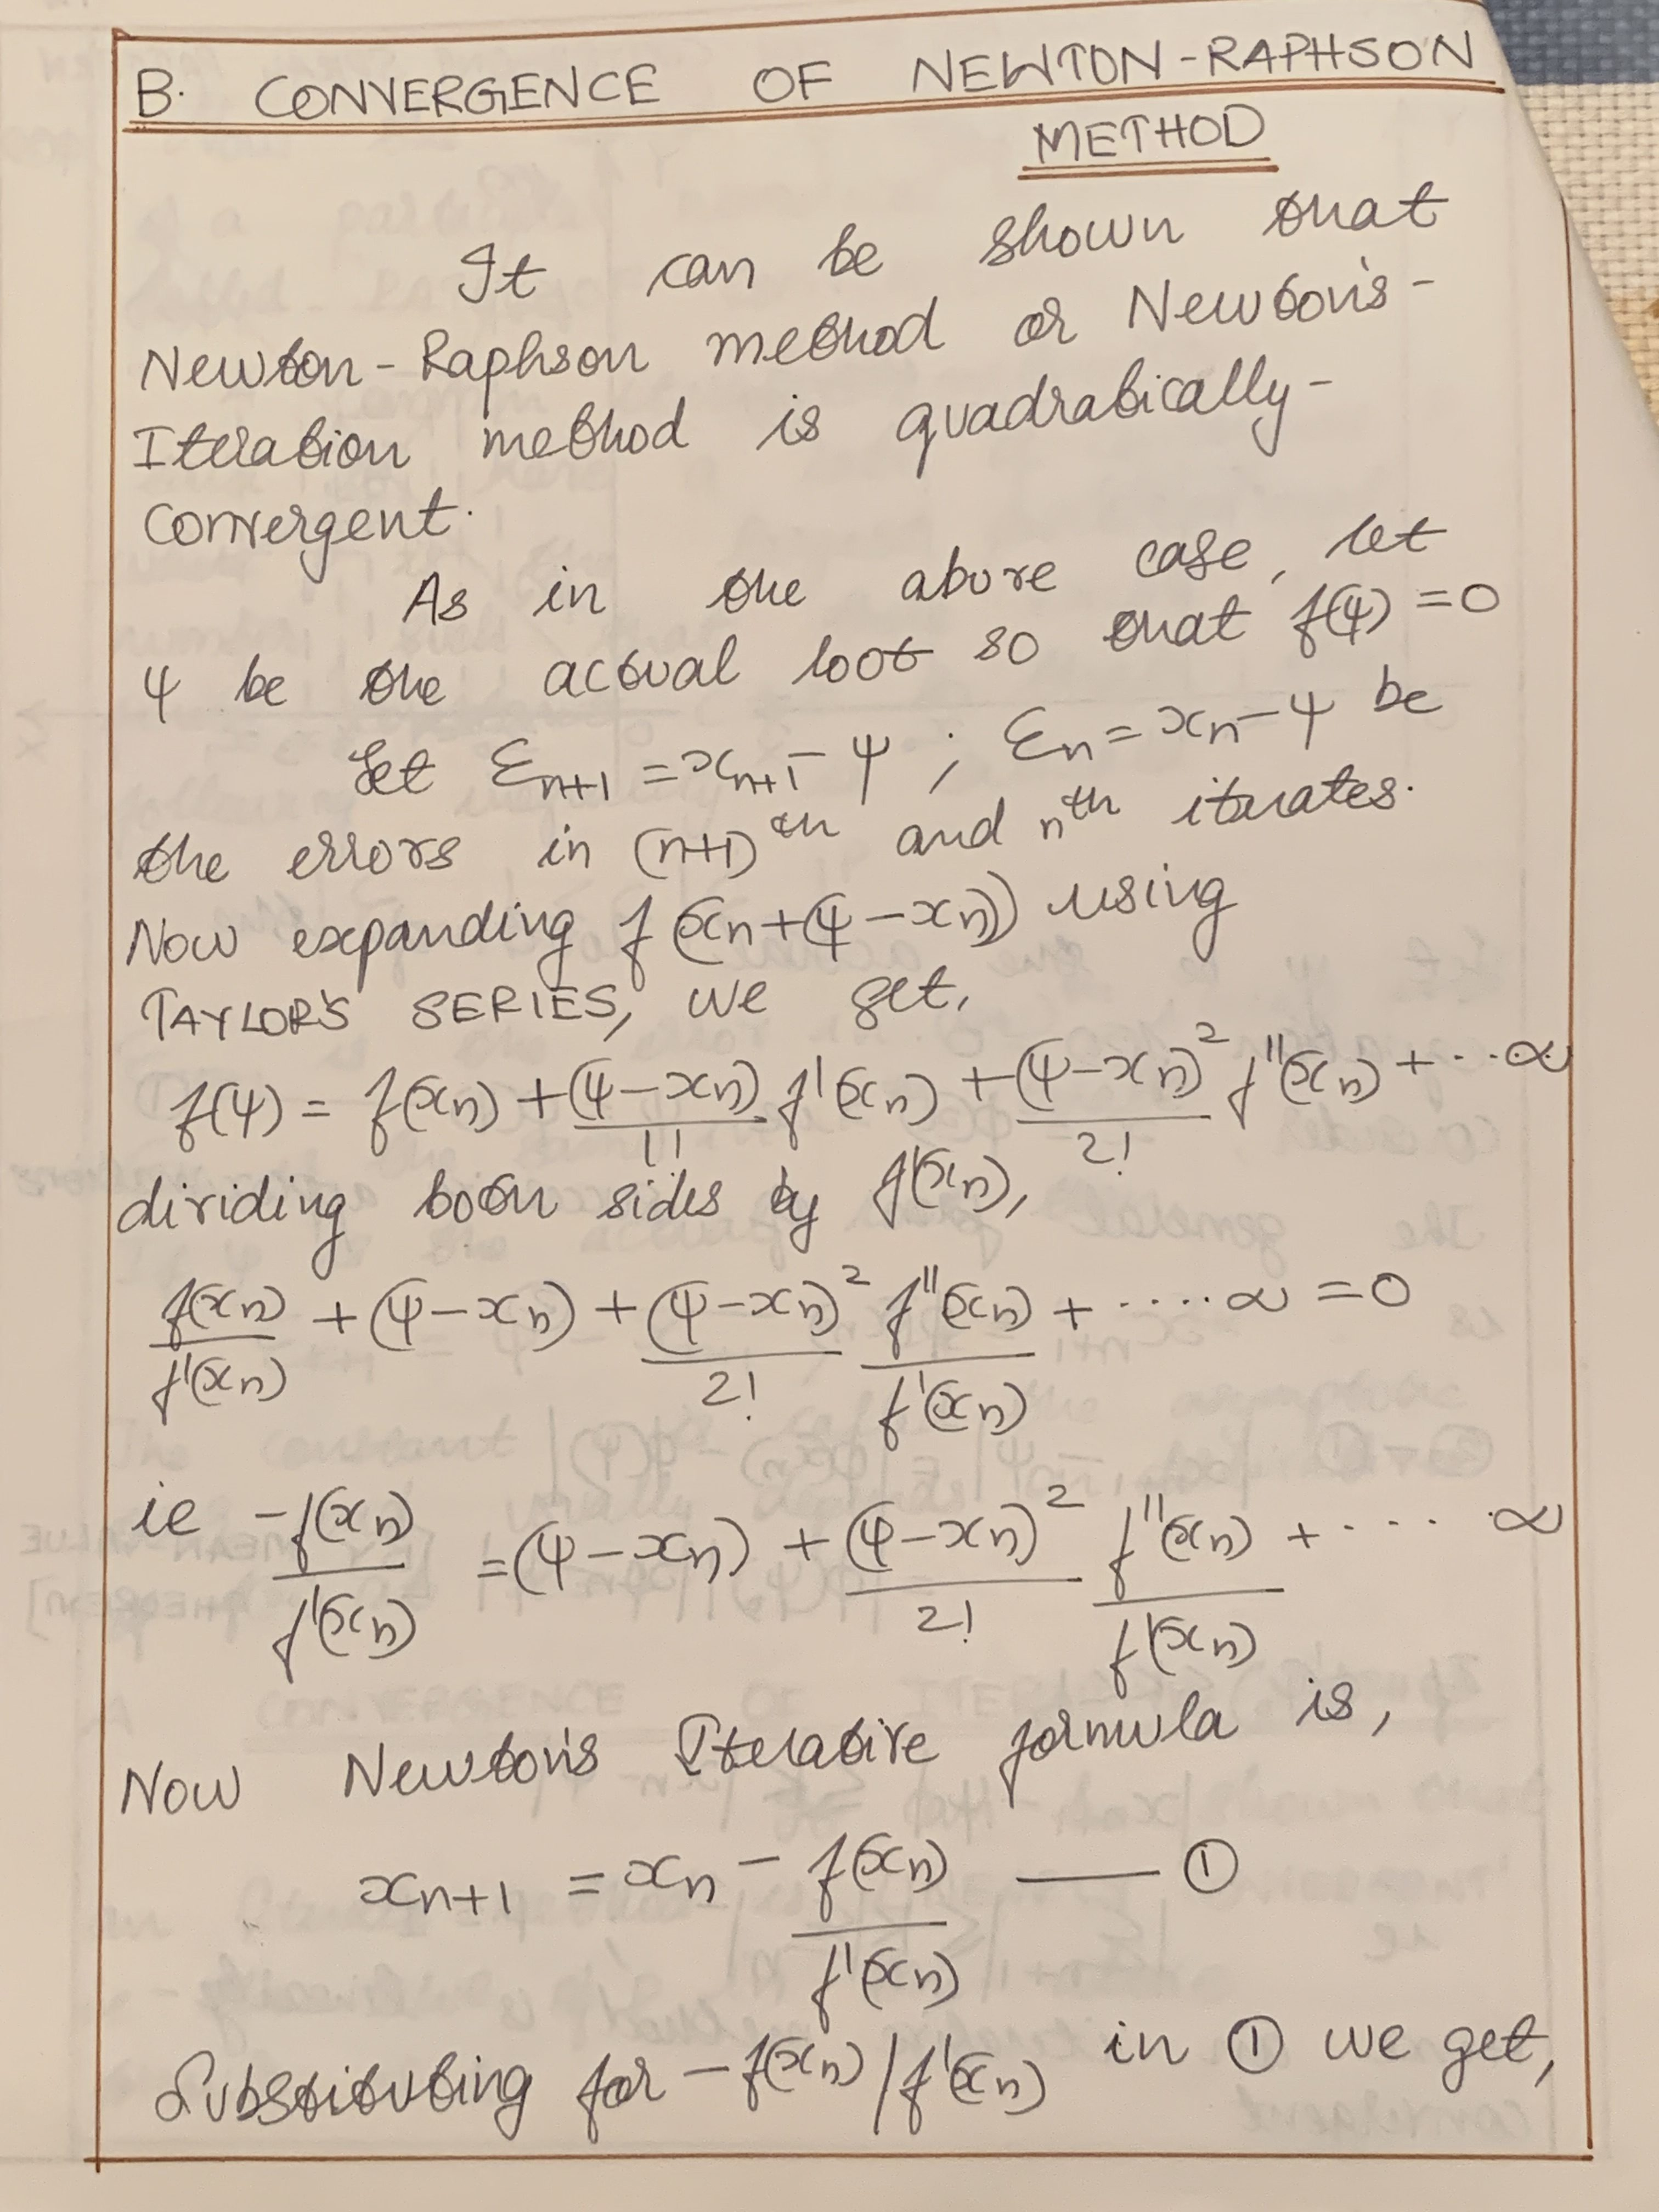 discuss-convergence-of-iterative-and-newton-raphson4